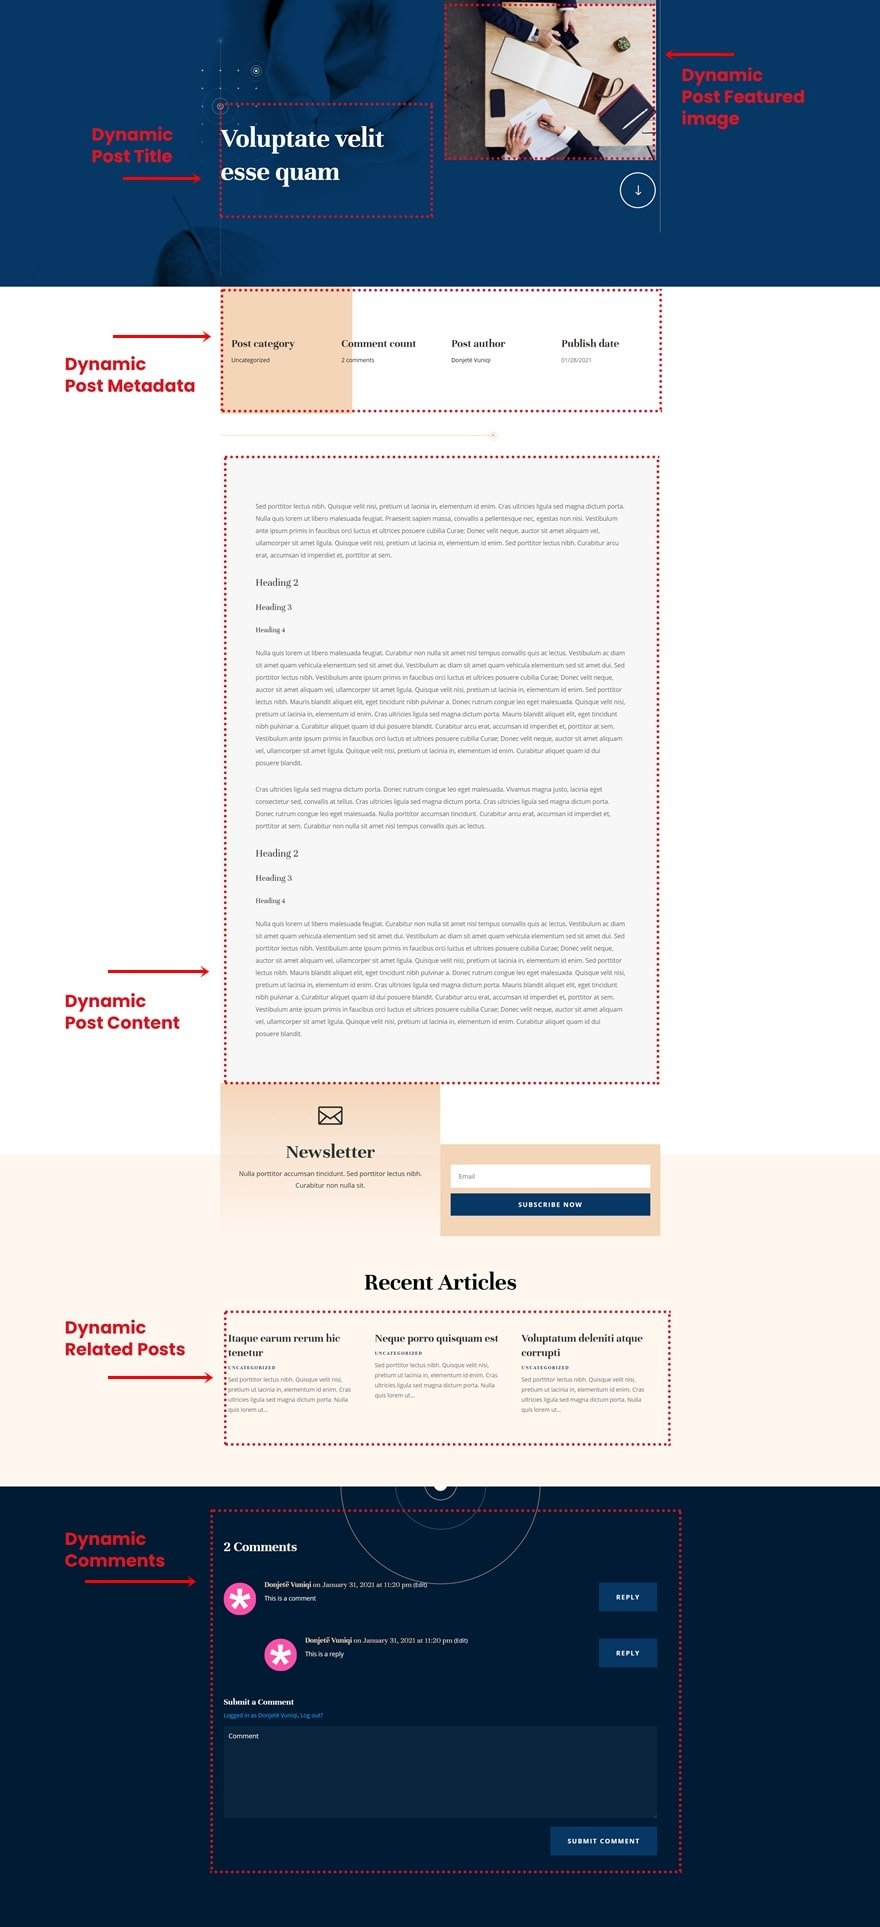 download-a-free-blog-post-template-for-divis-acupuncture-layout-pack-6 Download a FREE Blog Post Template for Divi's Acupuncture Layout Pack